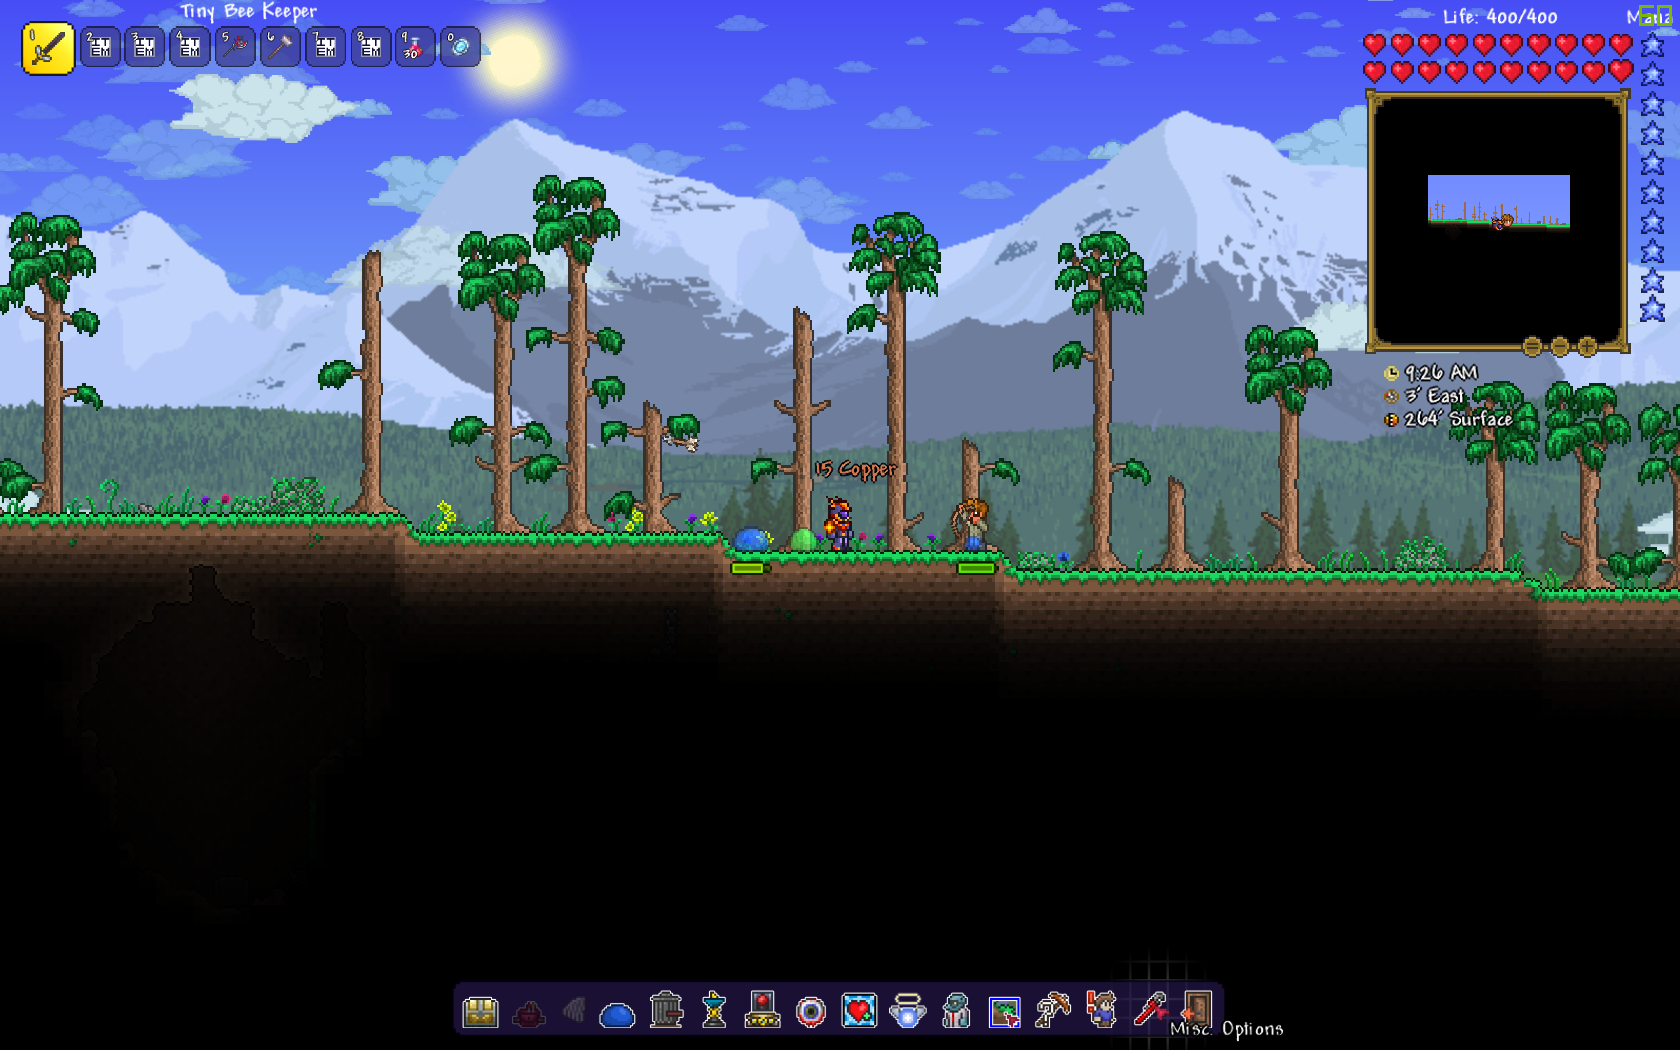 tModLoader - HERO's Mod - Terraria Creative Mode + Server